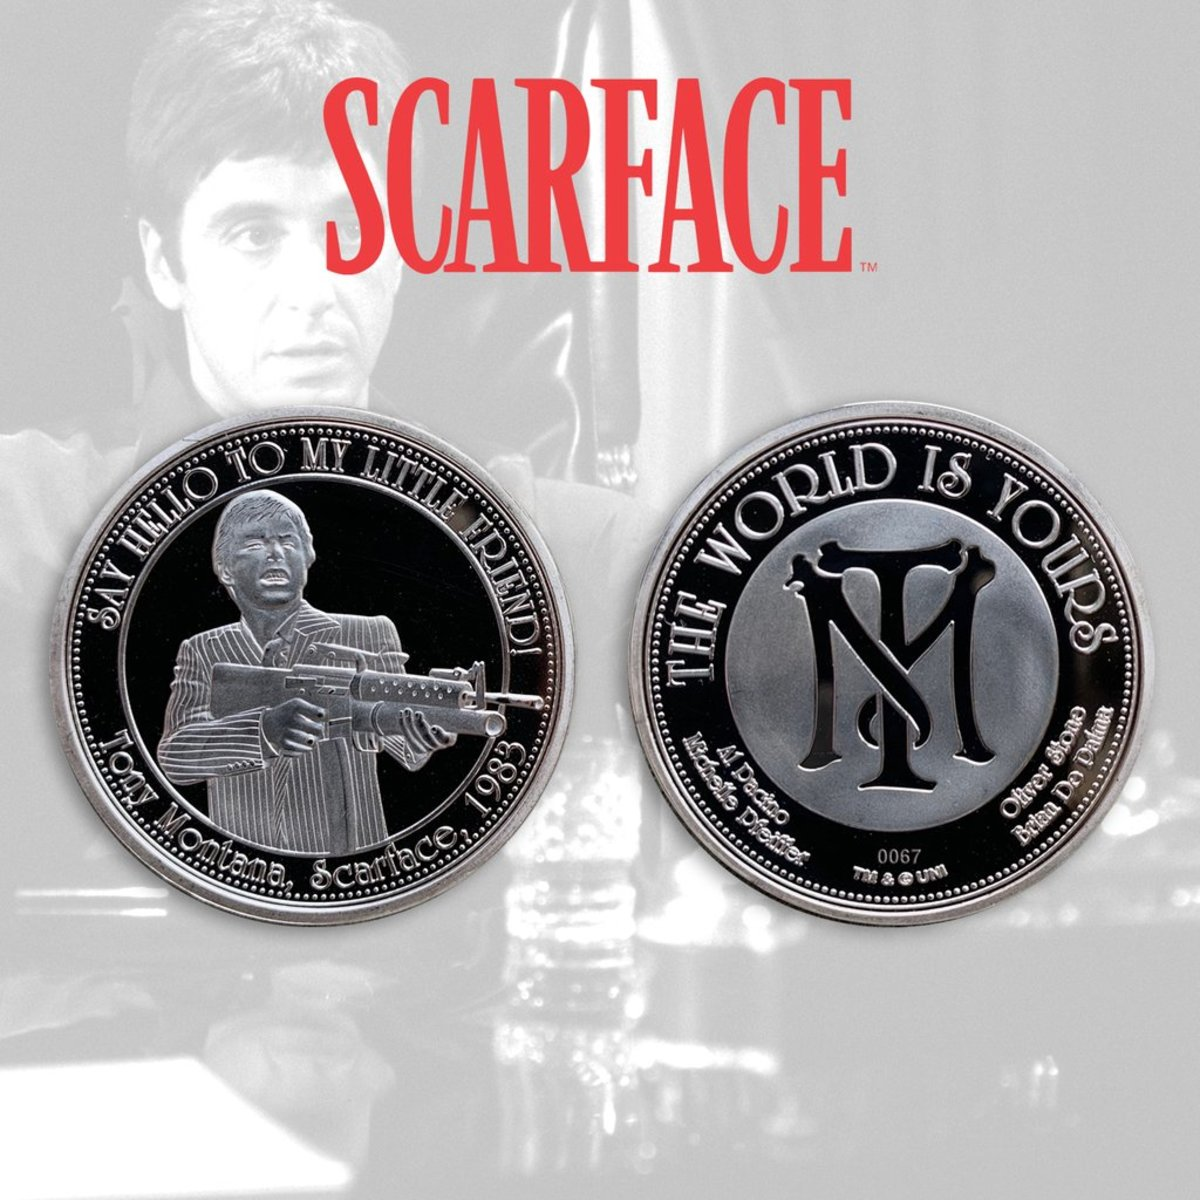 mince Scarface - The World Is Yours - FNTK-SC-01